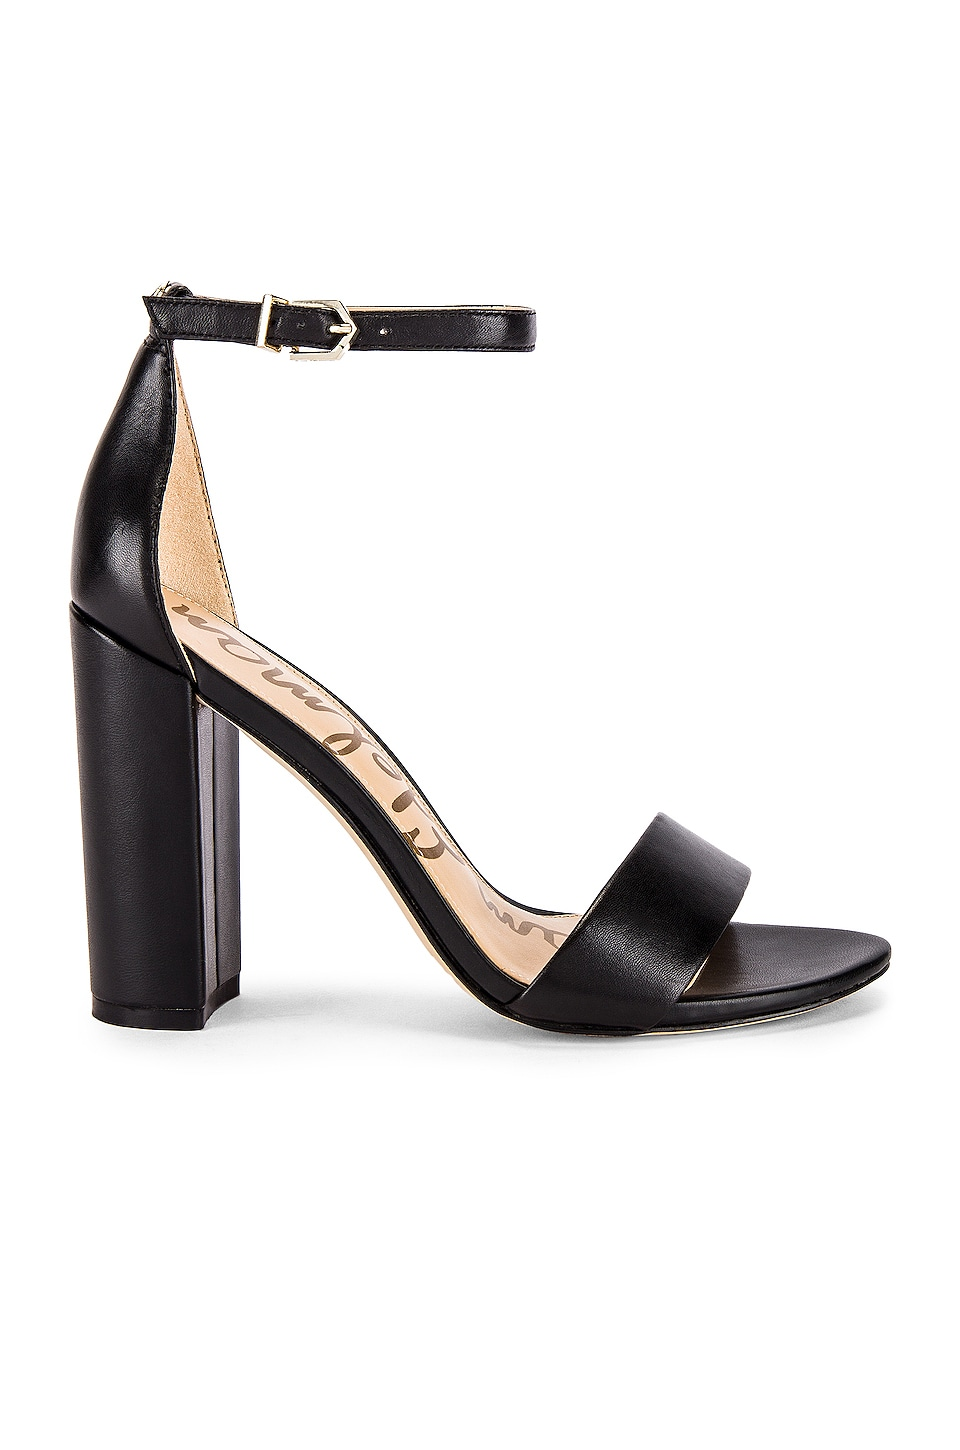 Sam Edelman Yaro Sandal in Black